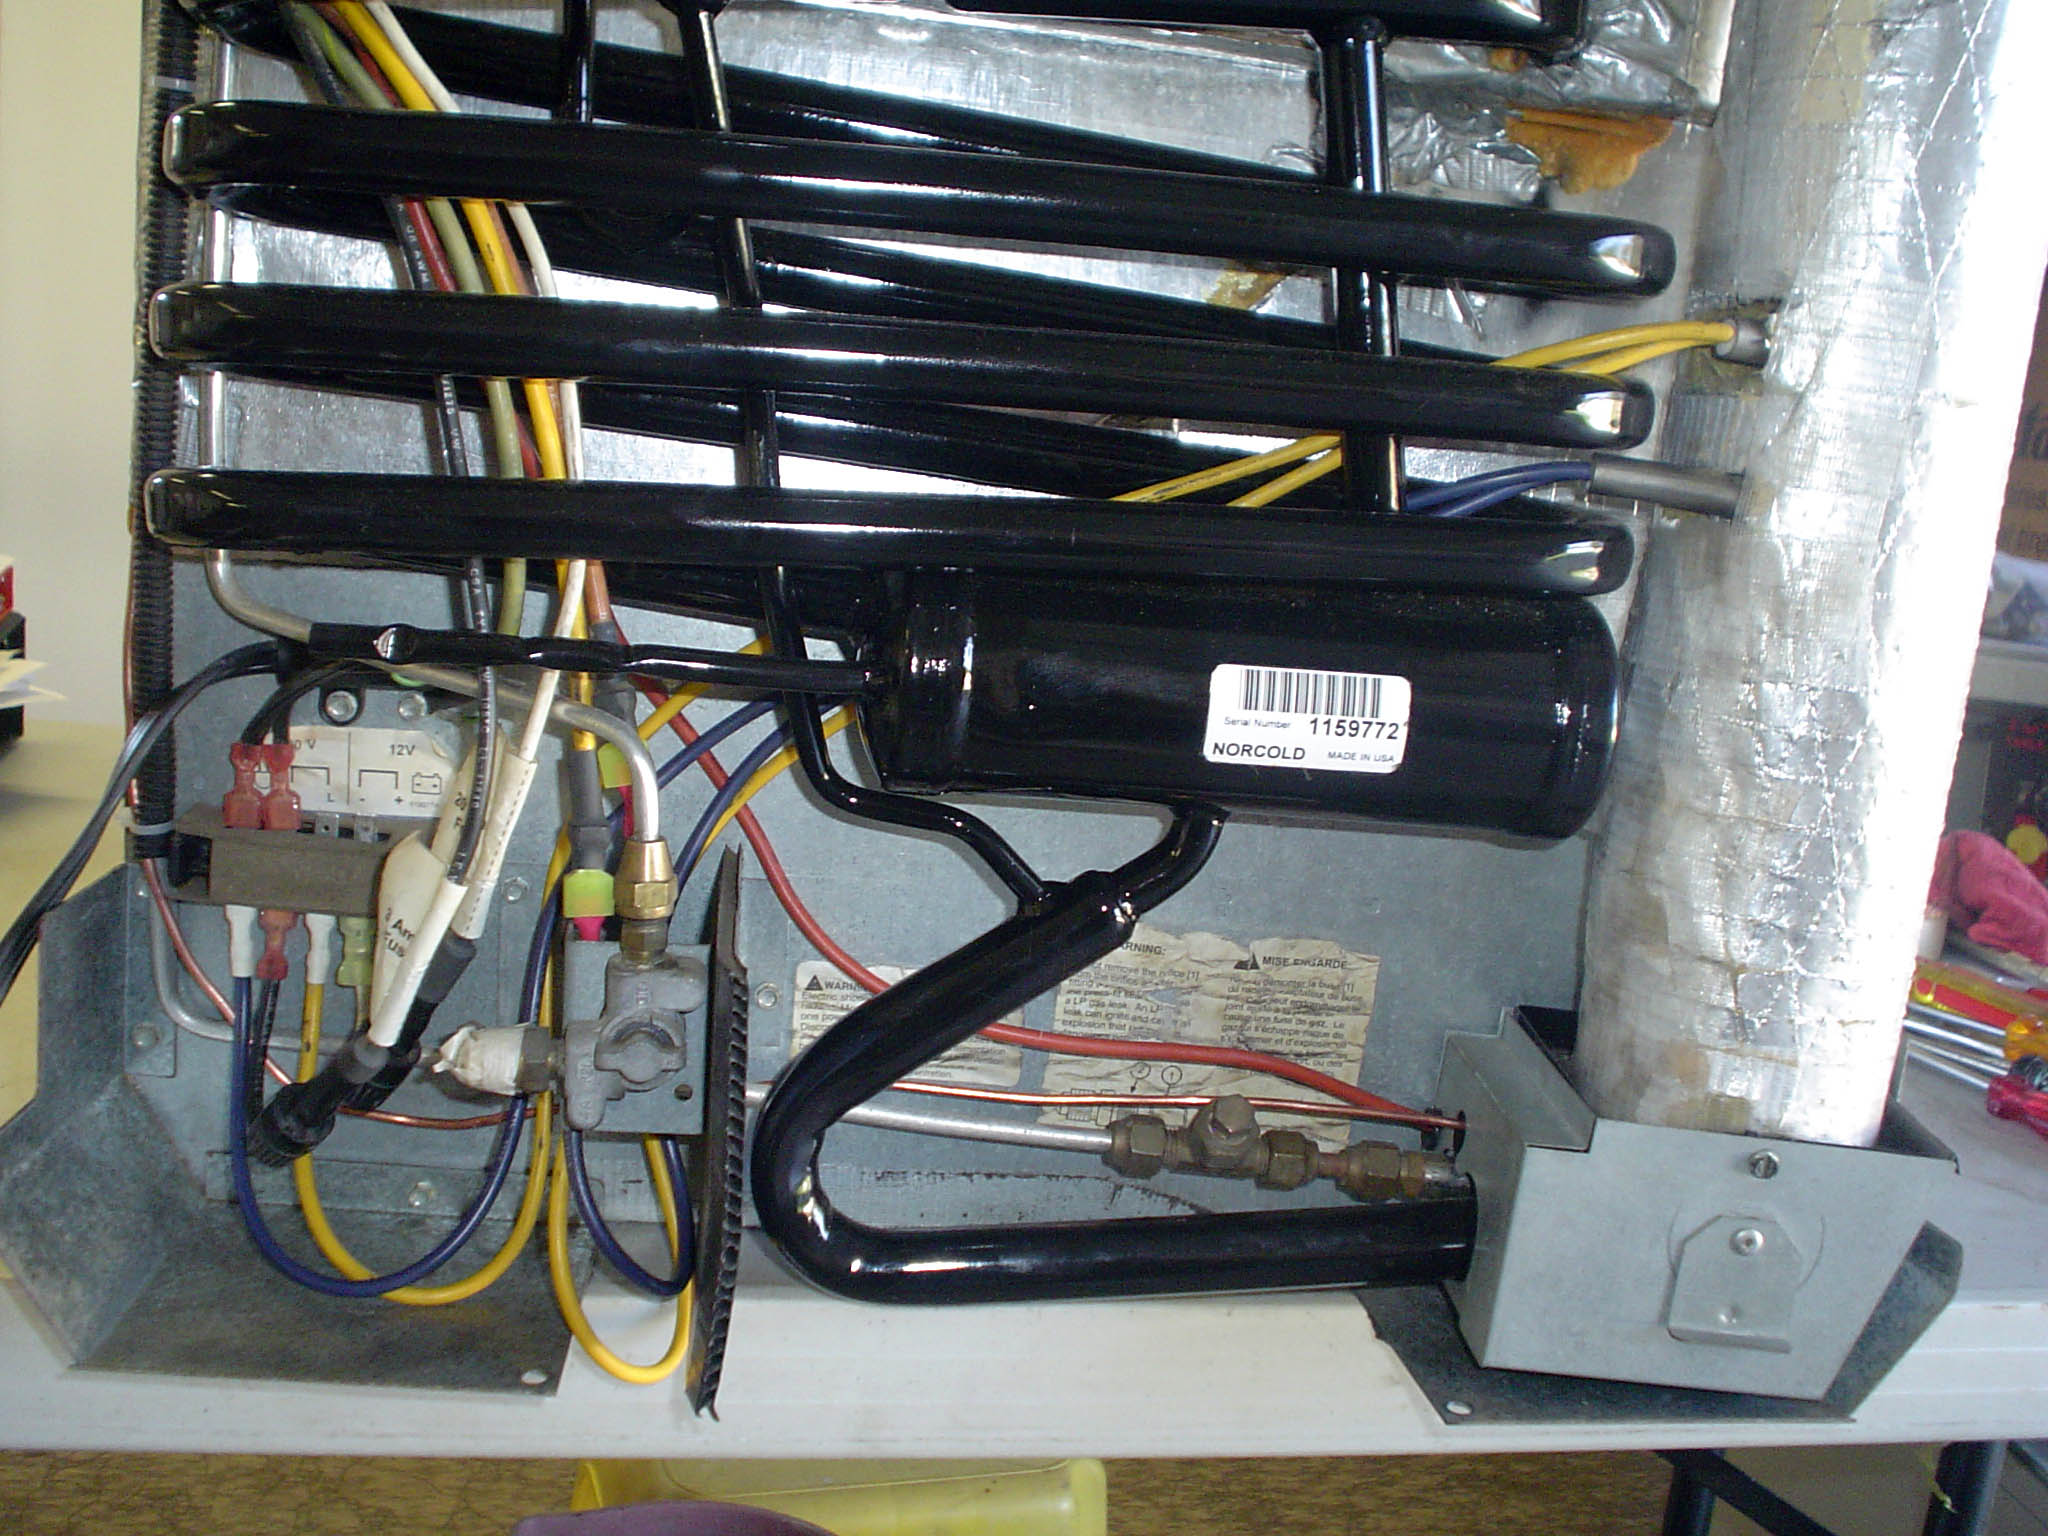 wiring diagram for a electrolux 3 way fridge 2007 dodge caravan radio refrigerator conside complete cleaning of the heating elements